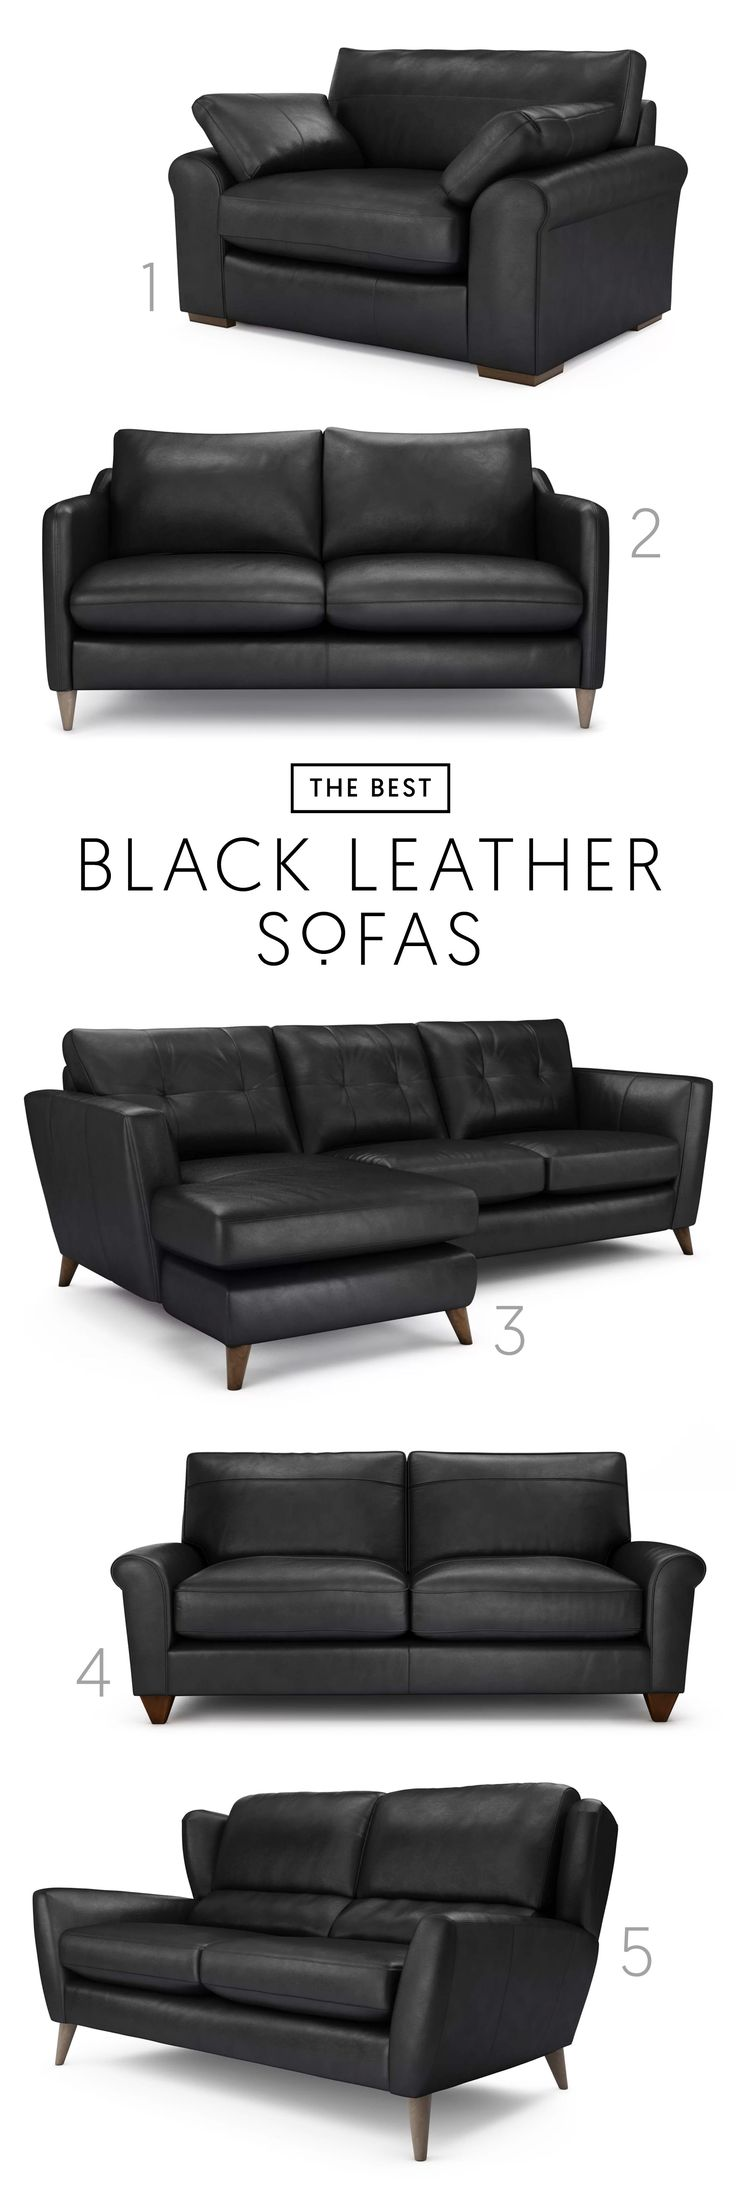 13 Best The Best Sofas Images On Pinterest